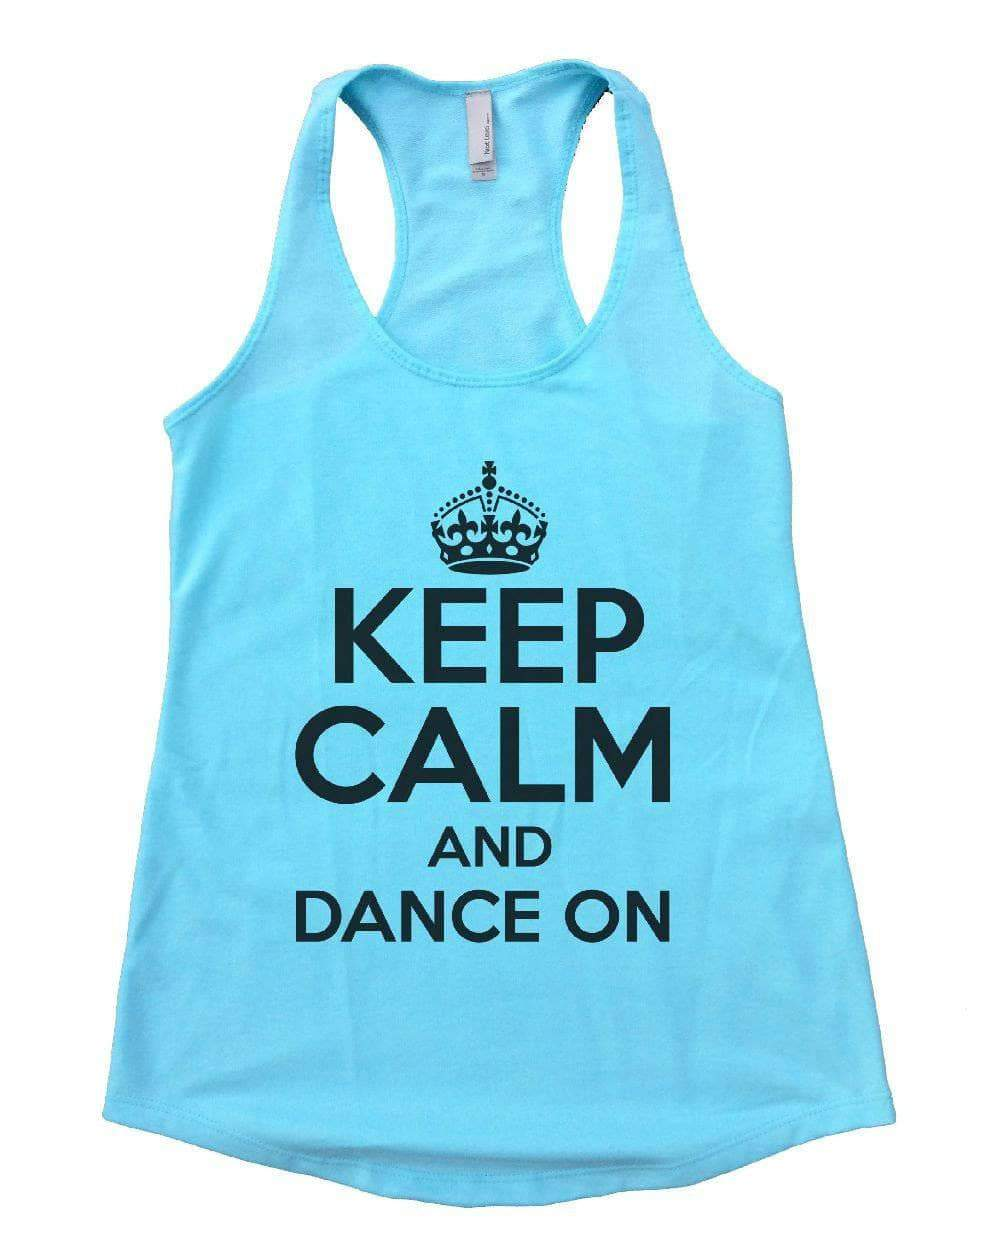 KEEP CALM AND DANCE ON Womens Workout Tank Top Small Womens Tank Tops Cancun Blue